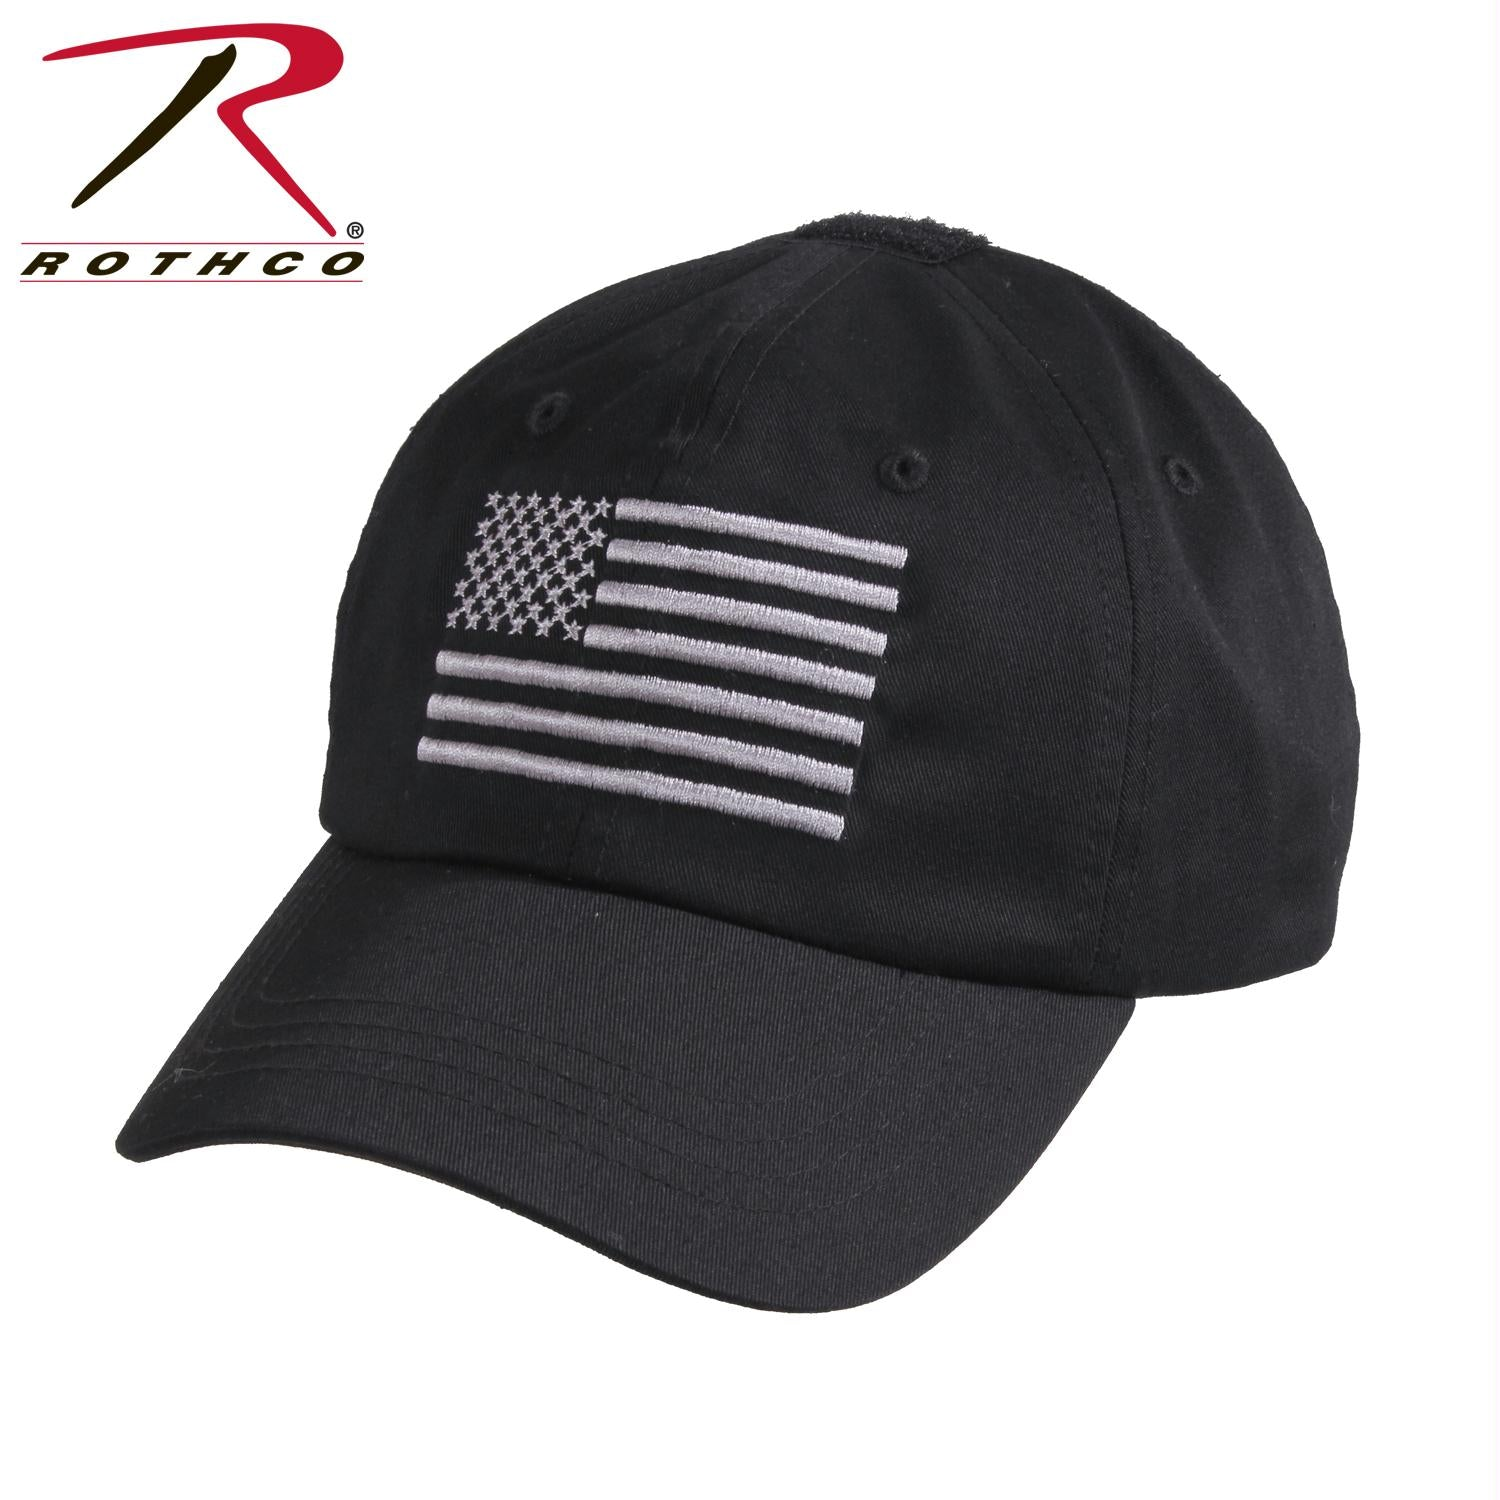 Rothco Tactical Operator Cap With US Flag - Black / One Size